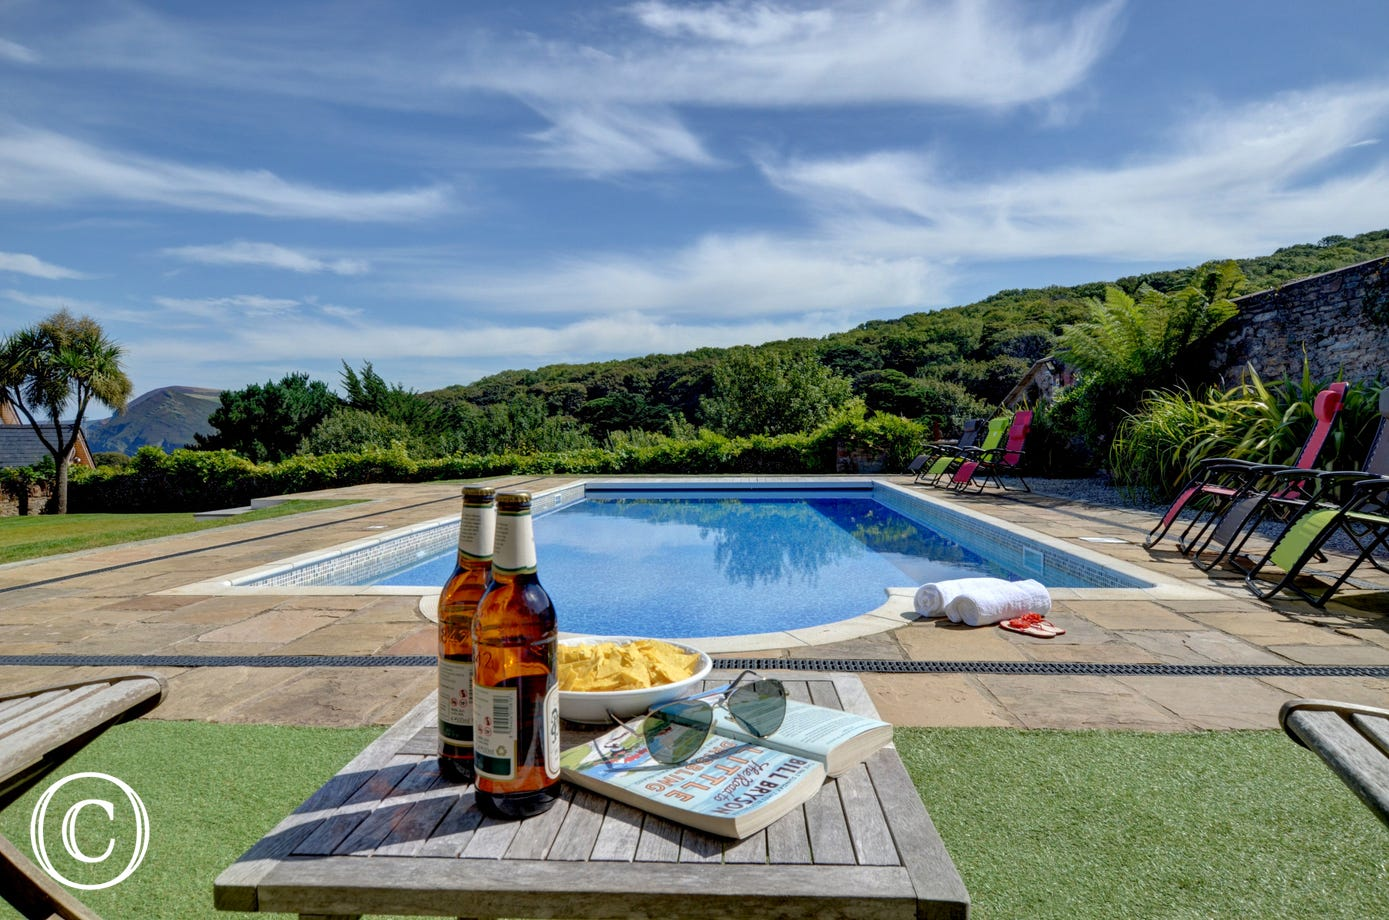 Enjoy a cool beer and a dip in the pool after a day at the beach